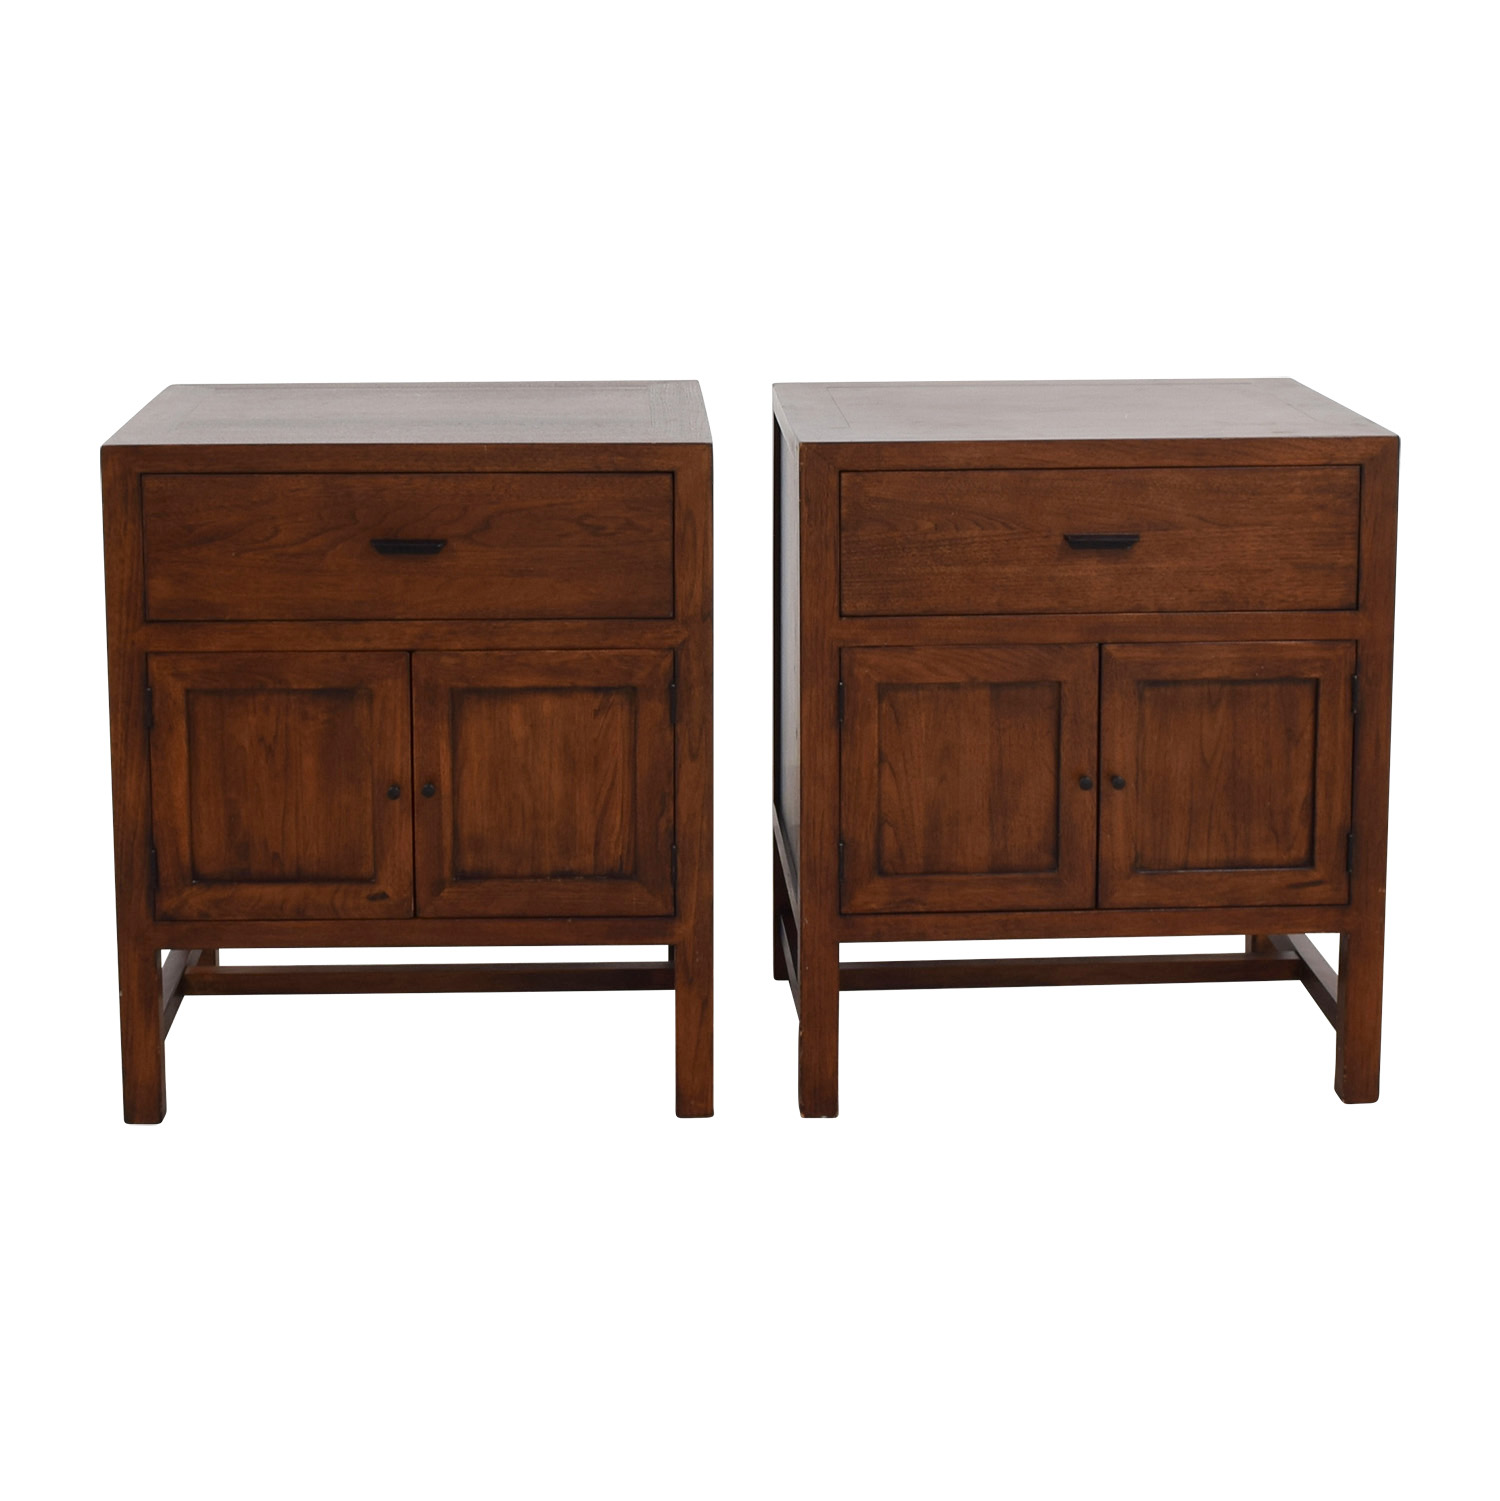 shop Room & Board Room & Board One-Drawer with Storage Nightstands online